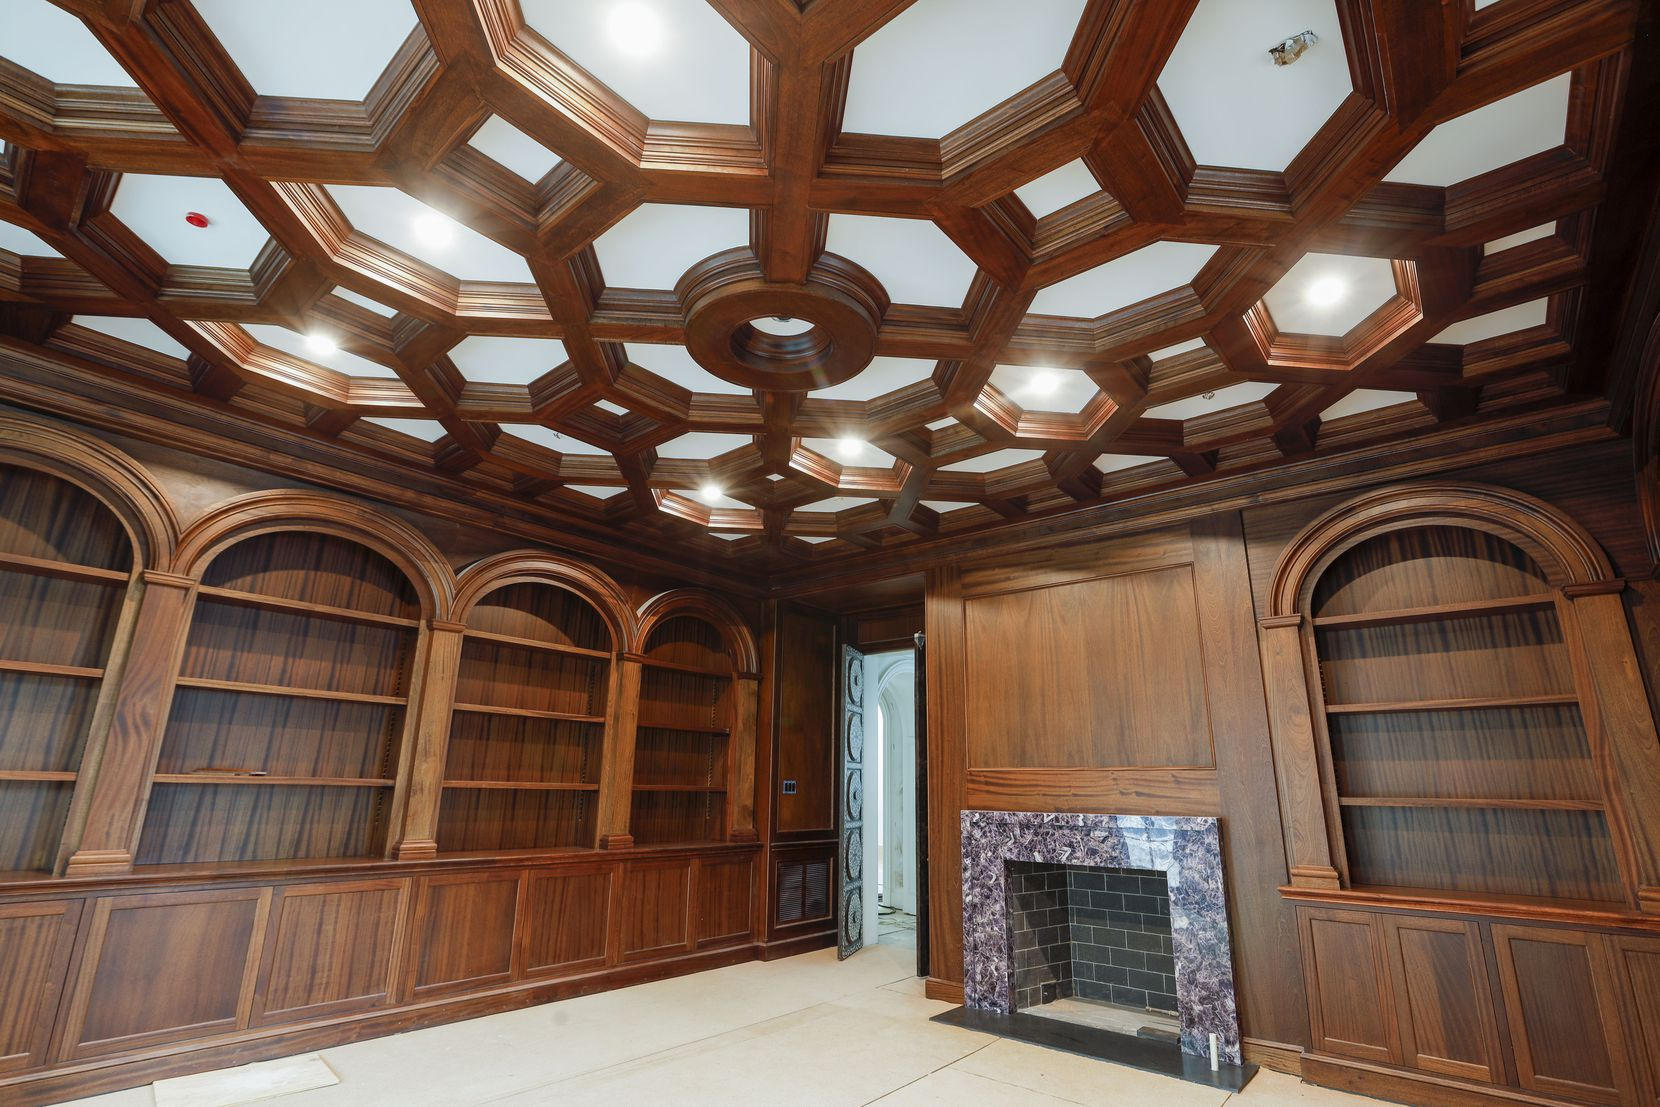 The library at 6915 Baltimore Drive has African mahogany-lined walls and bookshelves and an amethyst fireplace surround.